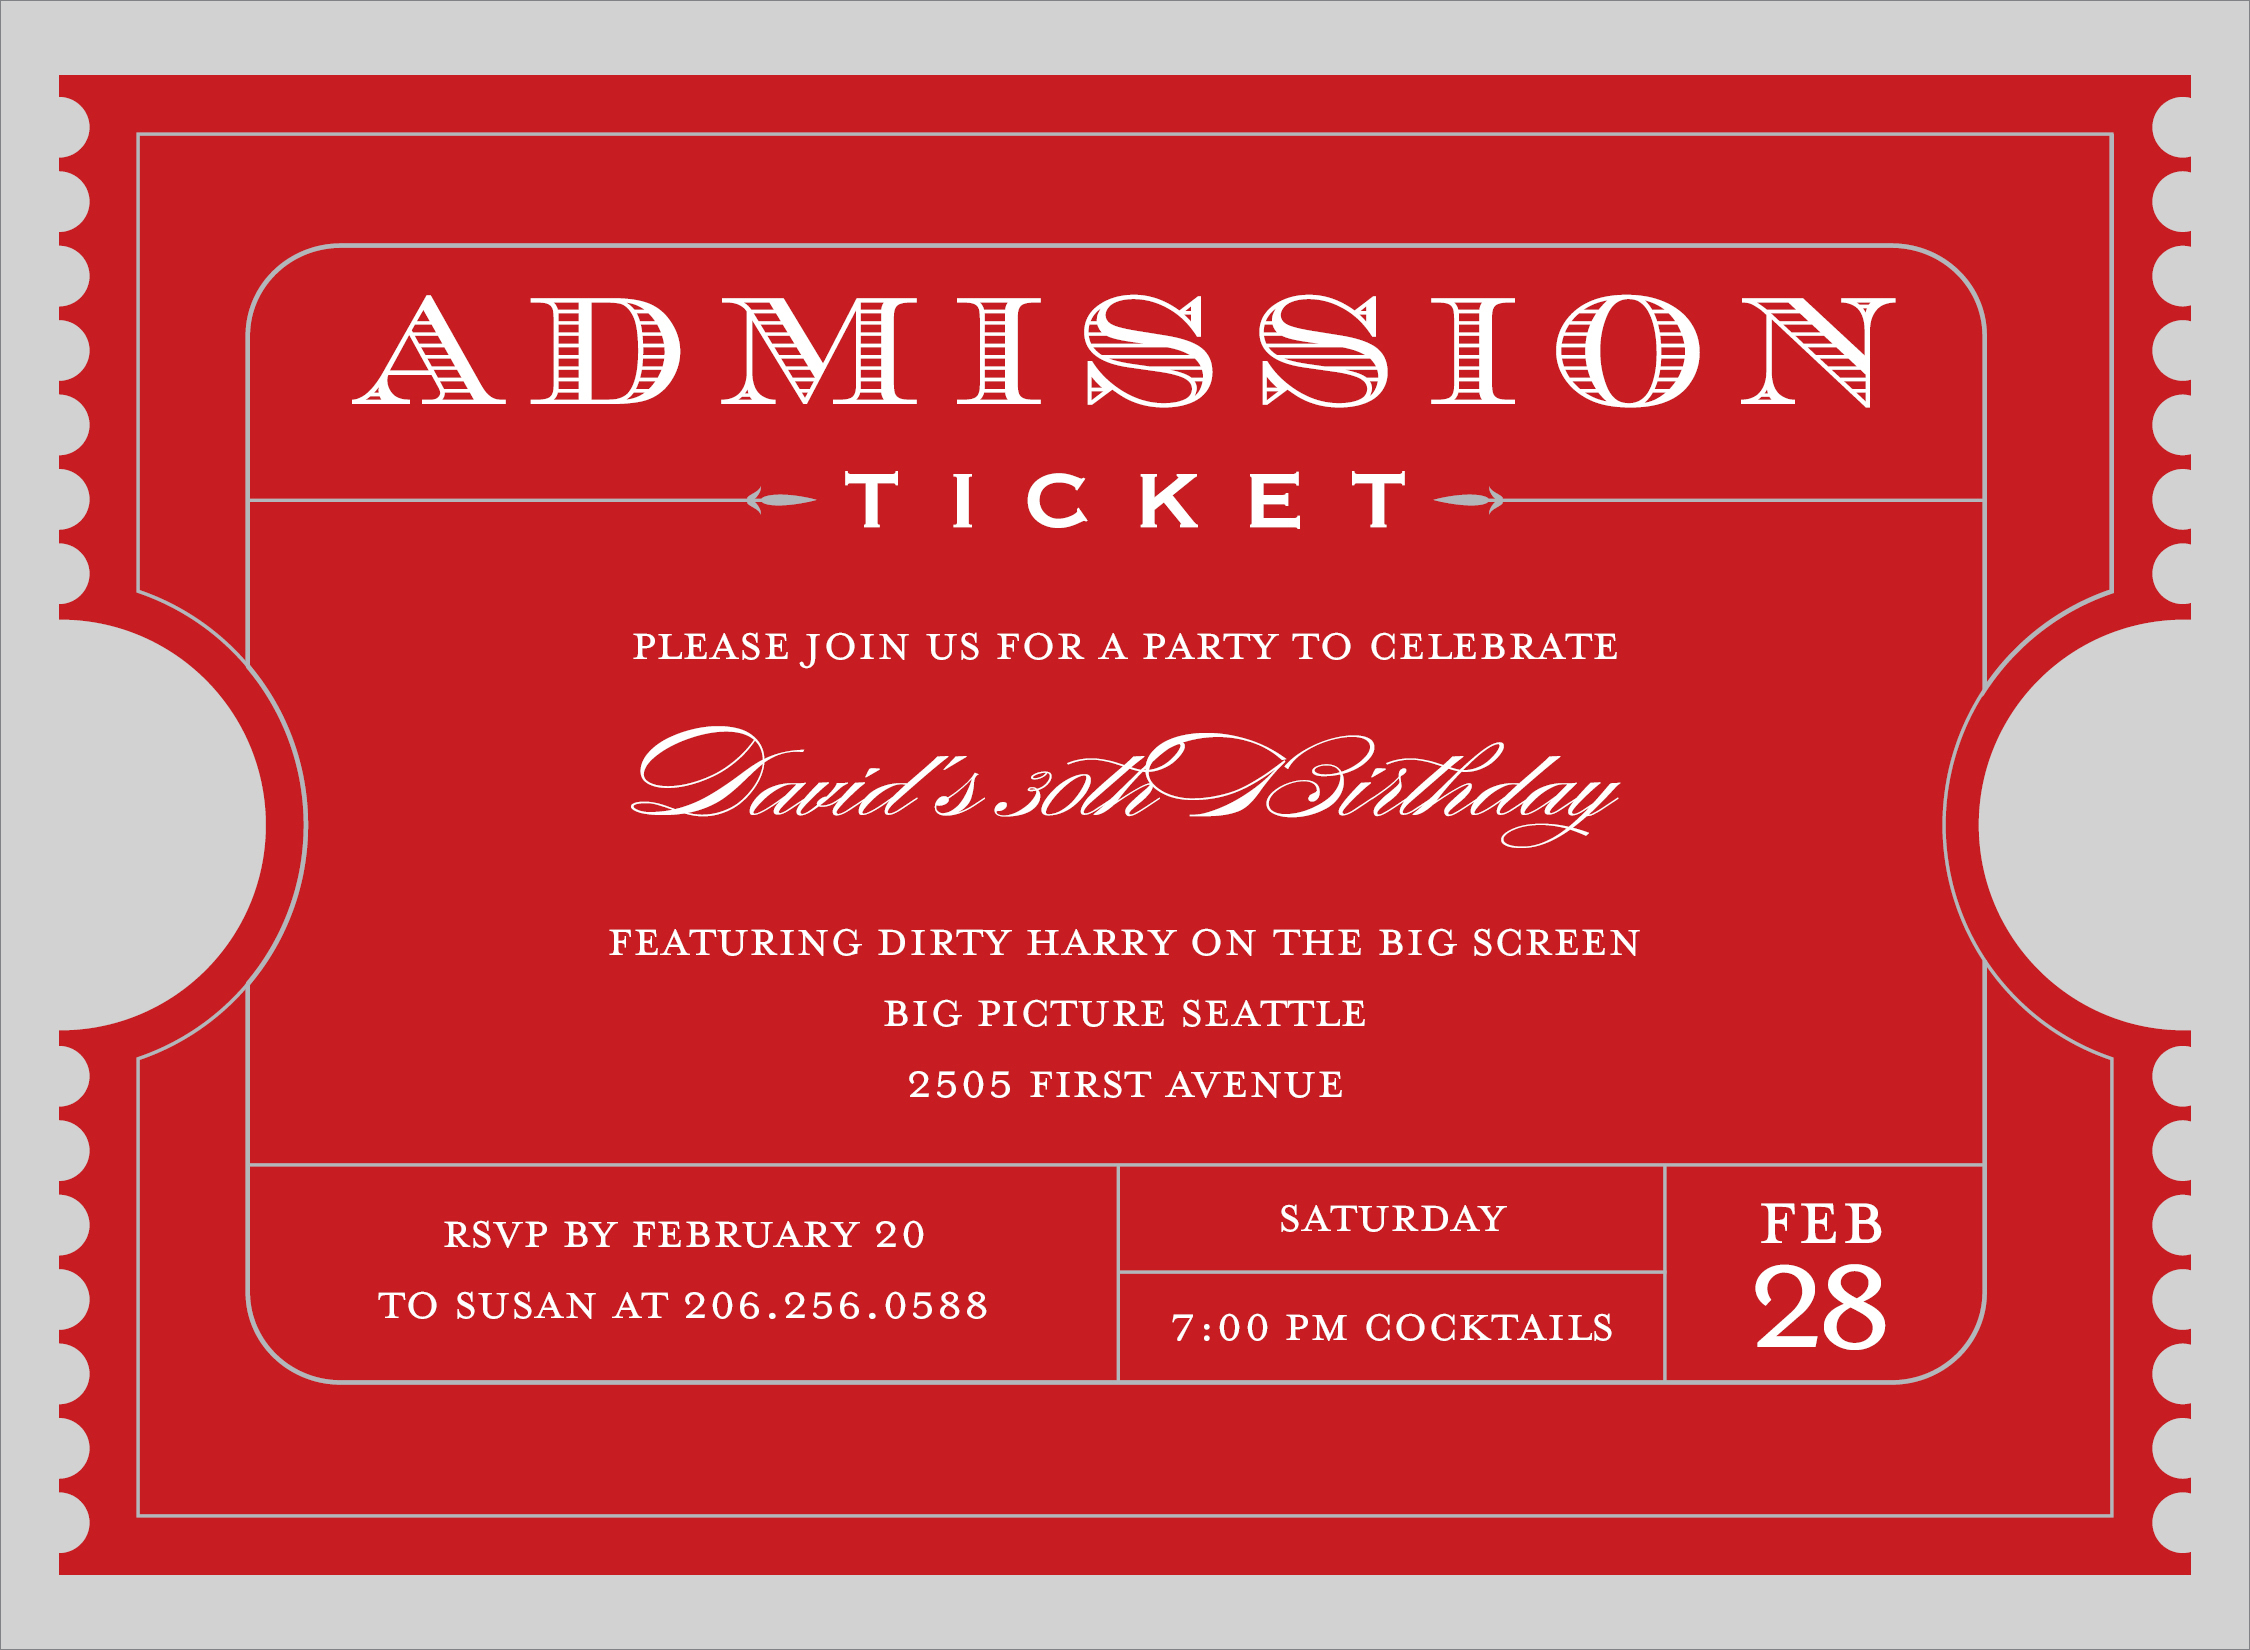 Doc22501650 Ticket Admission Template Admission Tickets – Admission Tickets Template